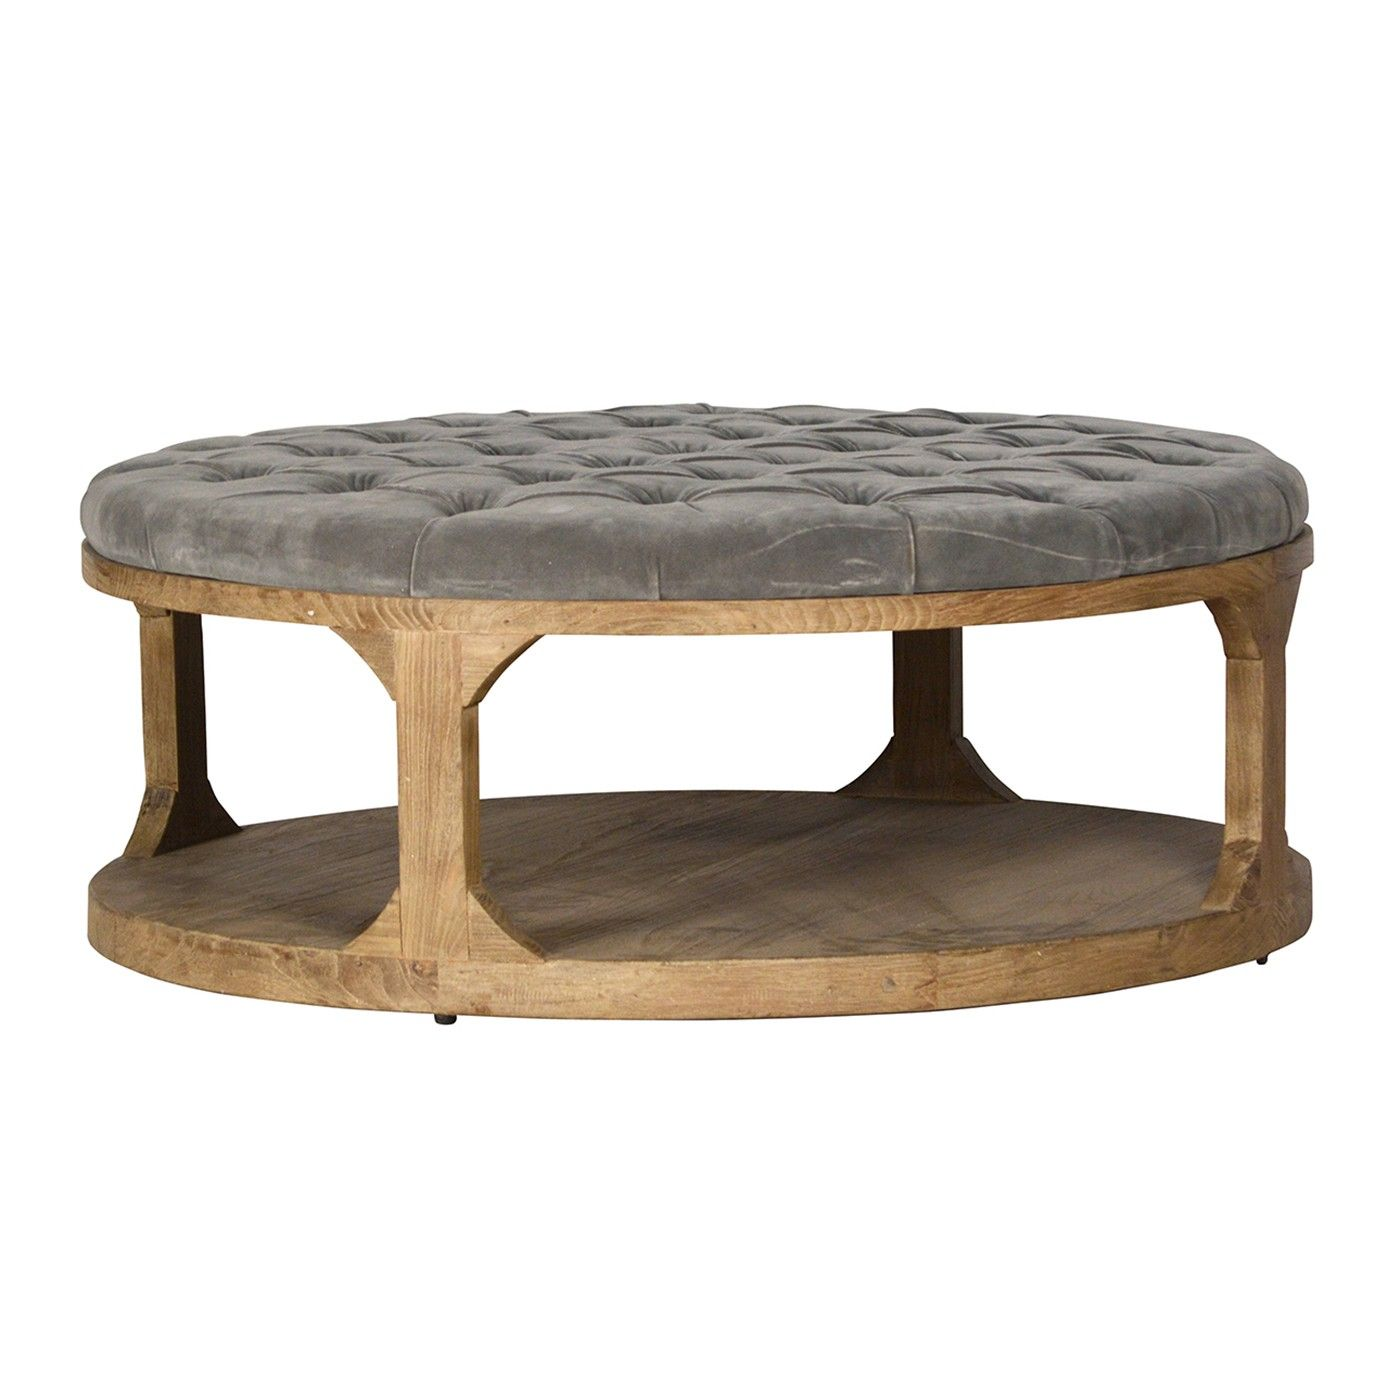 This Amazing Coffee Table Features A Tufted Fabric Top Length - Coffee table depth